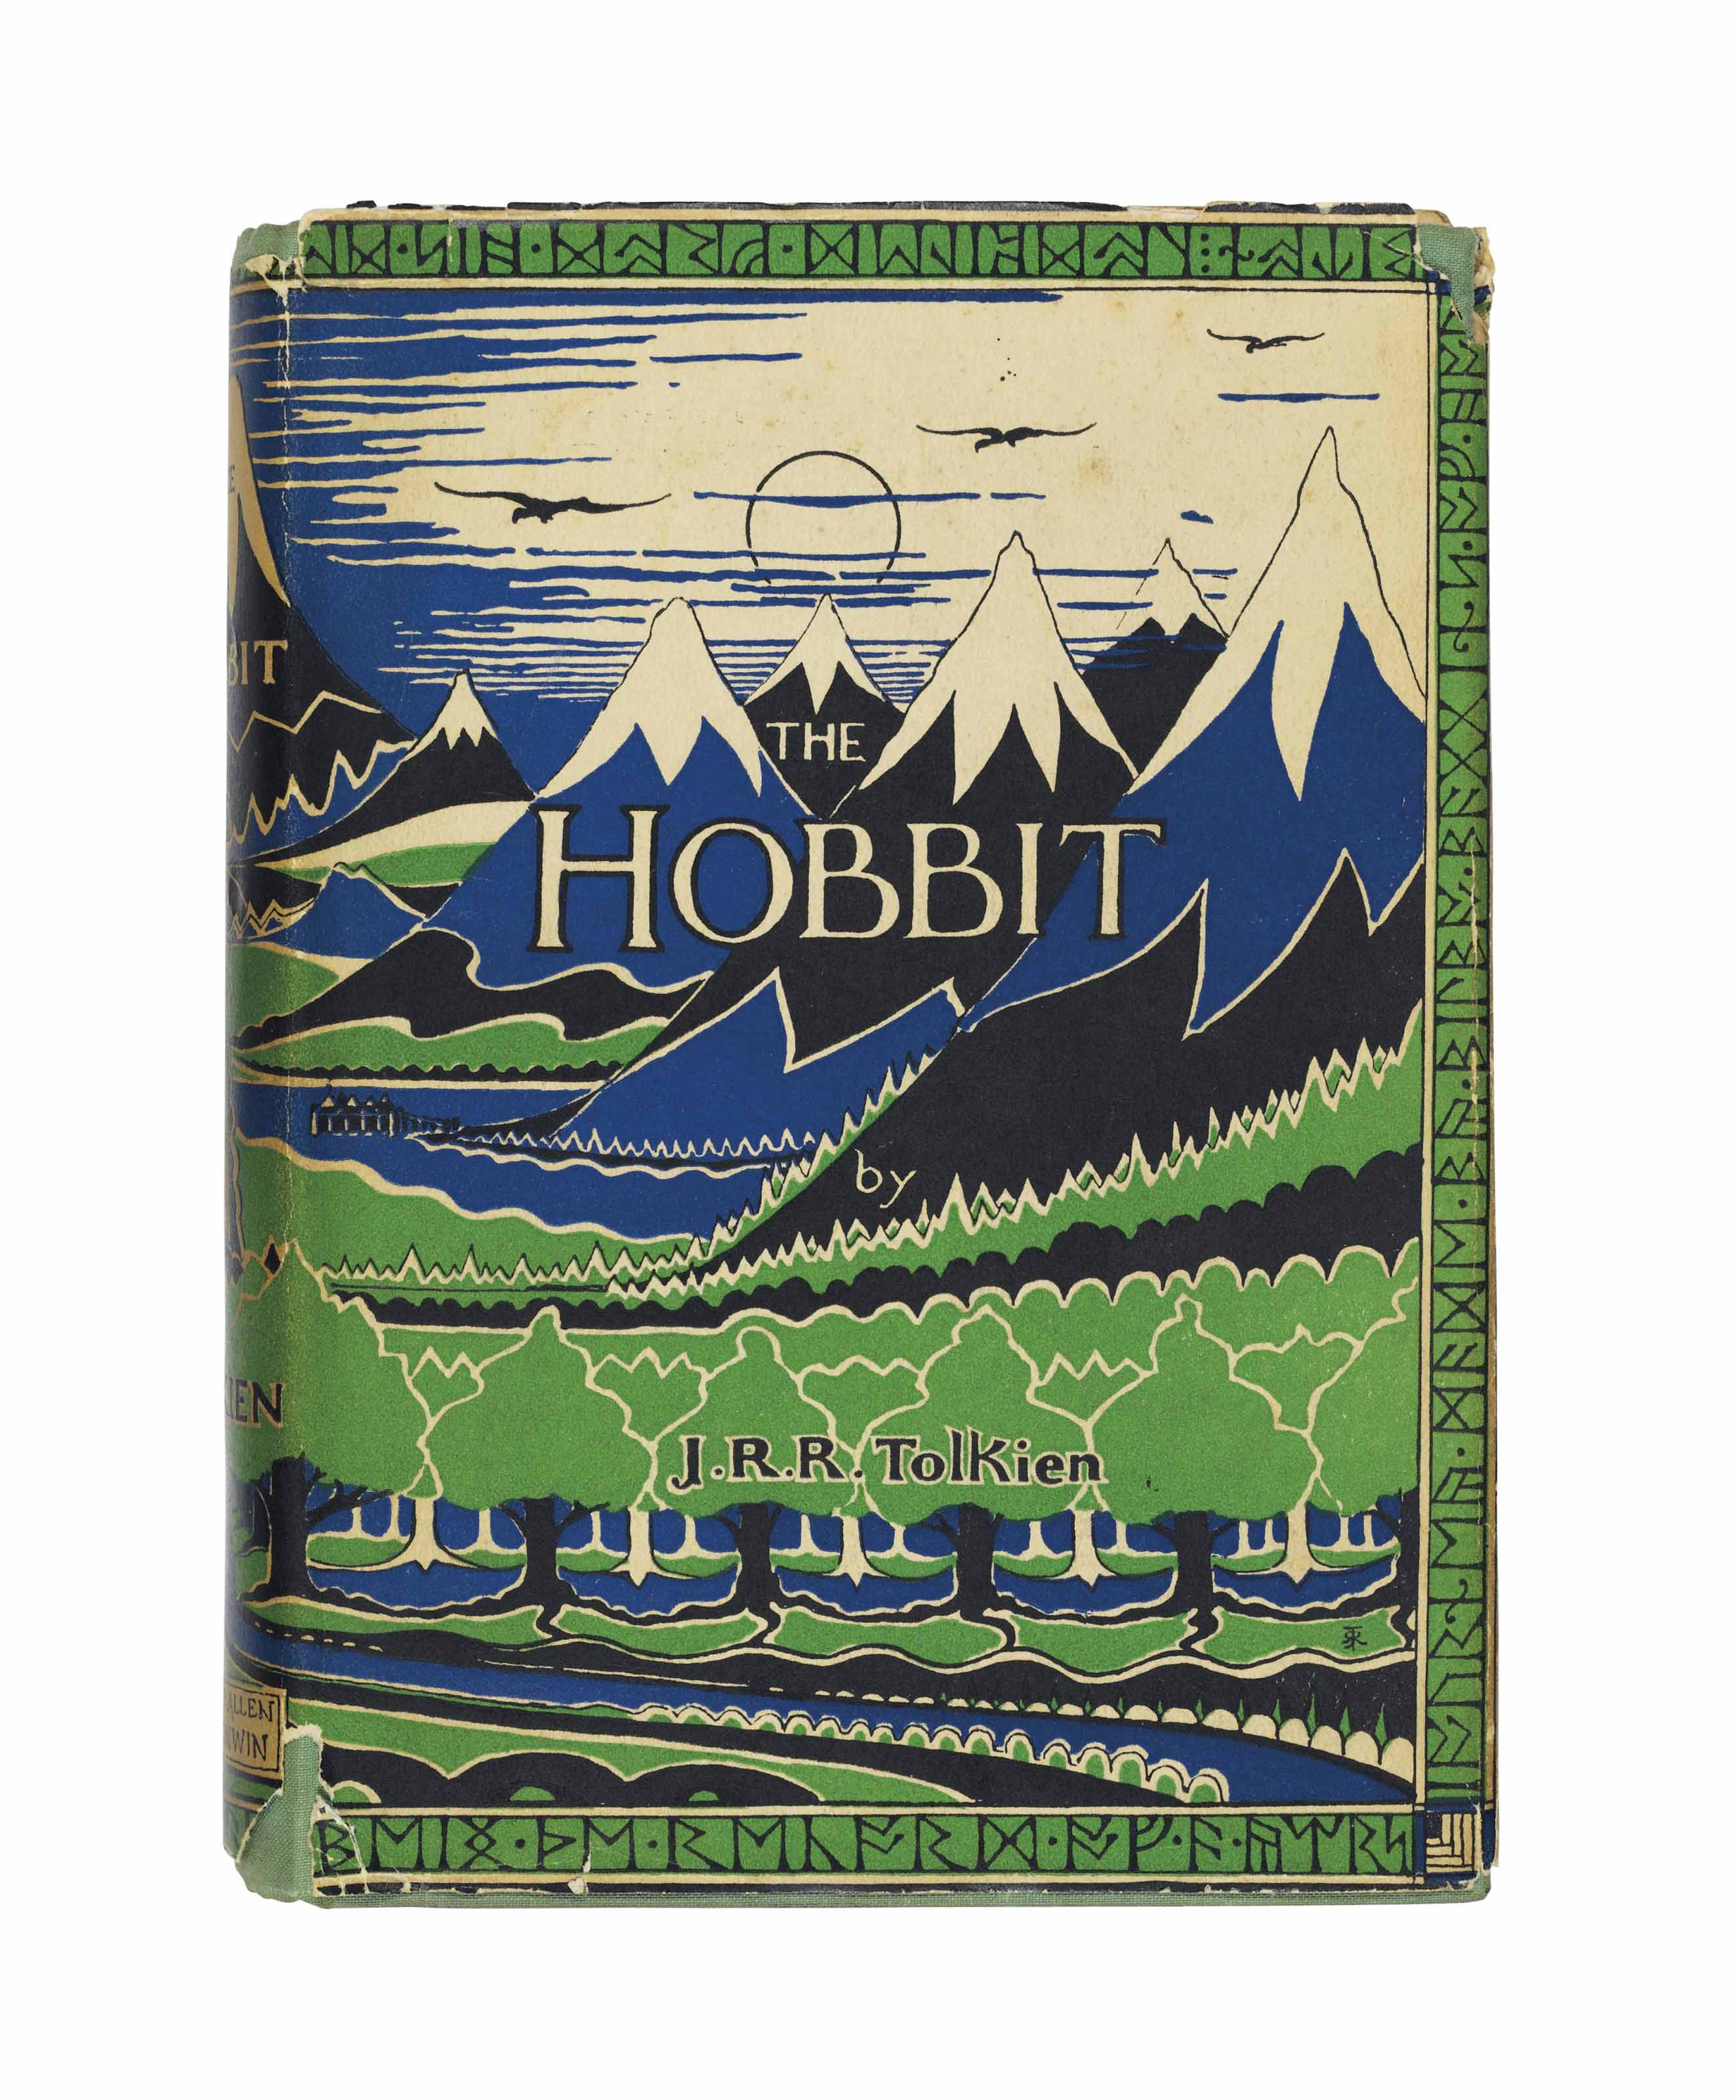 TOLKIEN, John Ronald Reuel (1892-1973). The Hobbit; or, There and Back Again. London: George Allen & Unwin Ltd., 1937. 8° (190 x132mm). Frontispiece and eight text illustrations by the author, inserted half-tone plate by the author, integral advertisement leaf at end. (Very faint scattered spotting to endpapers, front prelims, half-title and title, text-block fractionally split at gathering L, but the whole sound and clean.) Original publisher's light green cloth stamped in dark blue, off-white endpapers printed with Thror's map and a map of Wilderland in red and black after drawings by the author, top edge stained light green (top fore-corner of upper cover faintly bumped, faint spotting and dust-soiling to top edge), ORIGINAL PICTORIAL DUST-JACKET after a drawing by the author, with 'Dodgeson' corrected by hand on rear flap (price-clipped, edges frayed with associated small tears and chips to joints and top margin of rear cover, larger chipping to head and tail of spine, light soiling to spine, top edge and joints, faint spotting to flaps, fractionally more heavy to verso). Provenance: Theodore Bosanquet (neat ink ownership inscription to blank prelim).  A FRESH COPY OF THE FIRST EDITION, FIRST IMPRESSION. Currey p.476; Hammond A3a.